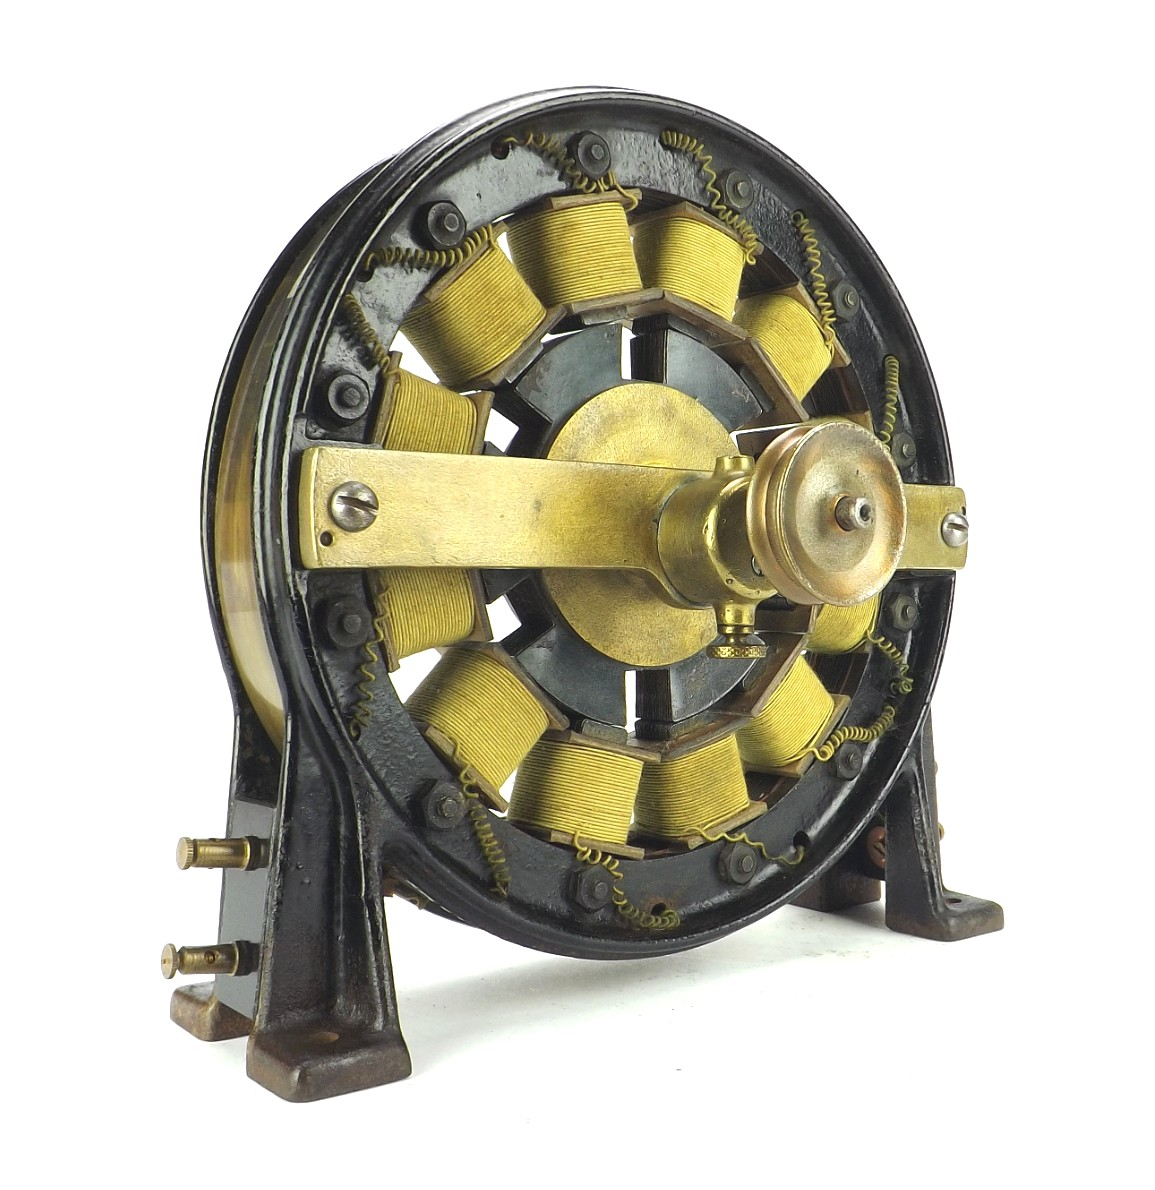 Circa 1893 Kennelly Therapeutic Alternator Manufactured By Edison Mfg. Co. Orange N.J.